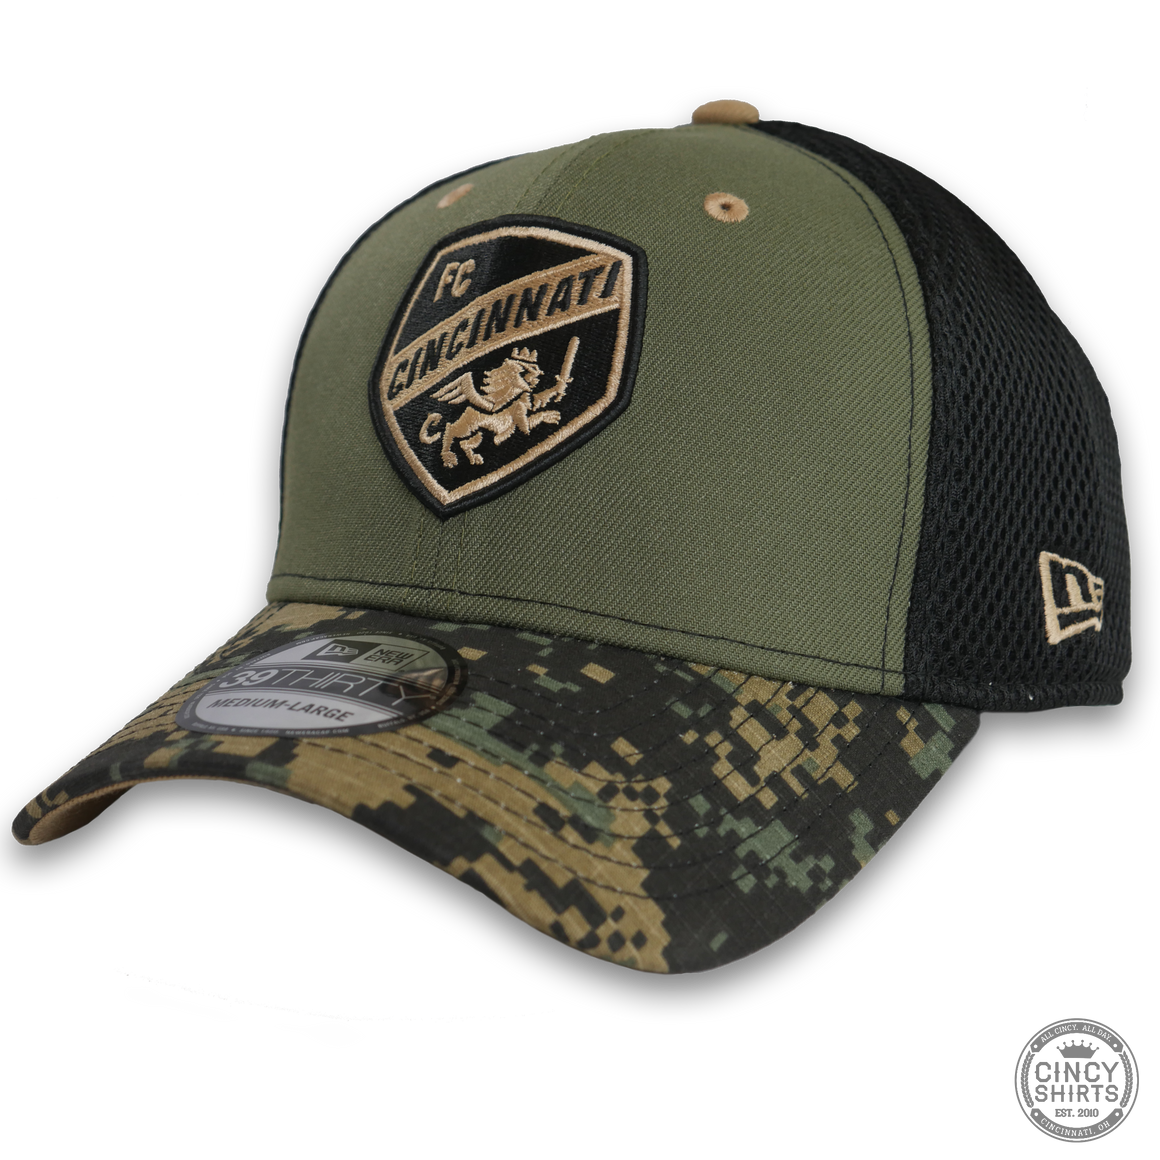 FC Cincinnati Green & Black Camo Hat